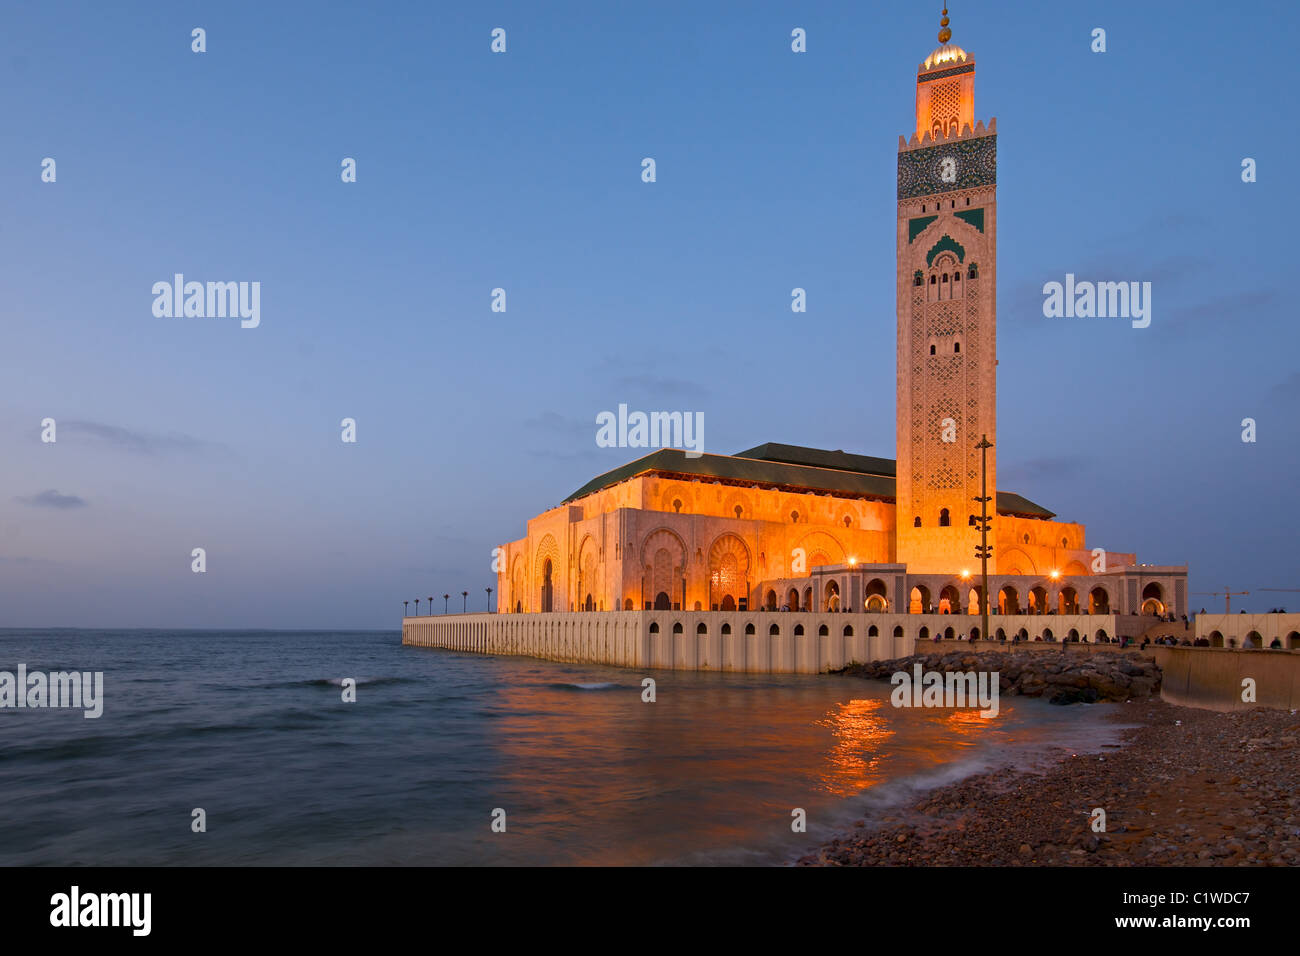 King Hassan II Mosque, Casablanca, Morocco captured during a beautiful sunset - Stock Image